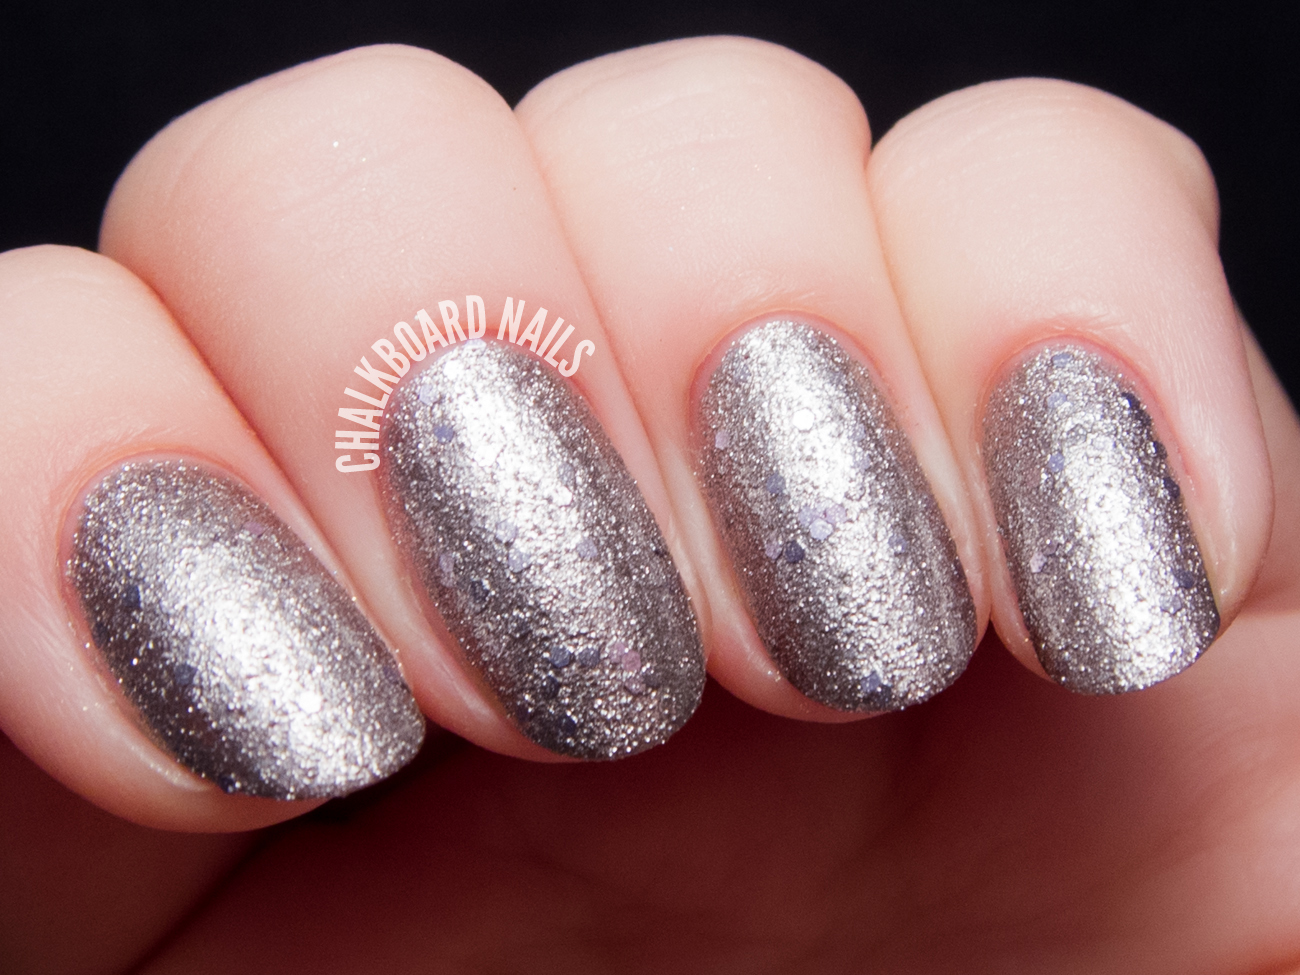 Color Club Friends With Benefits via @chalkboardnails